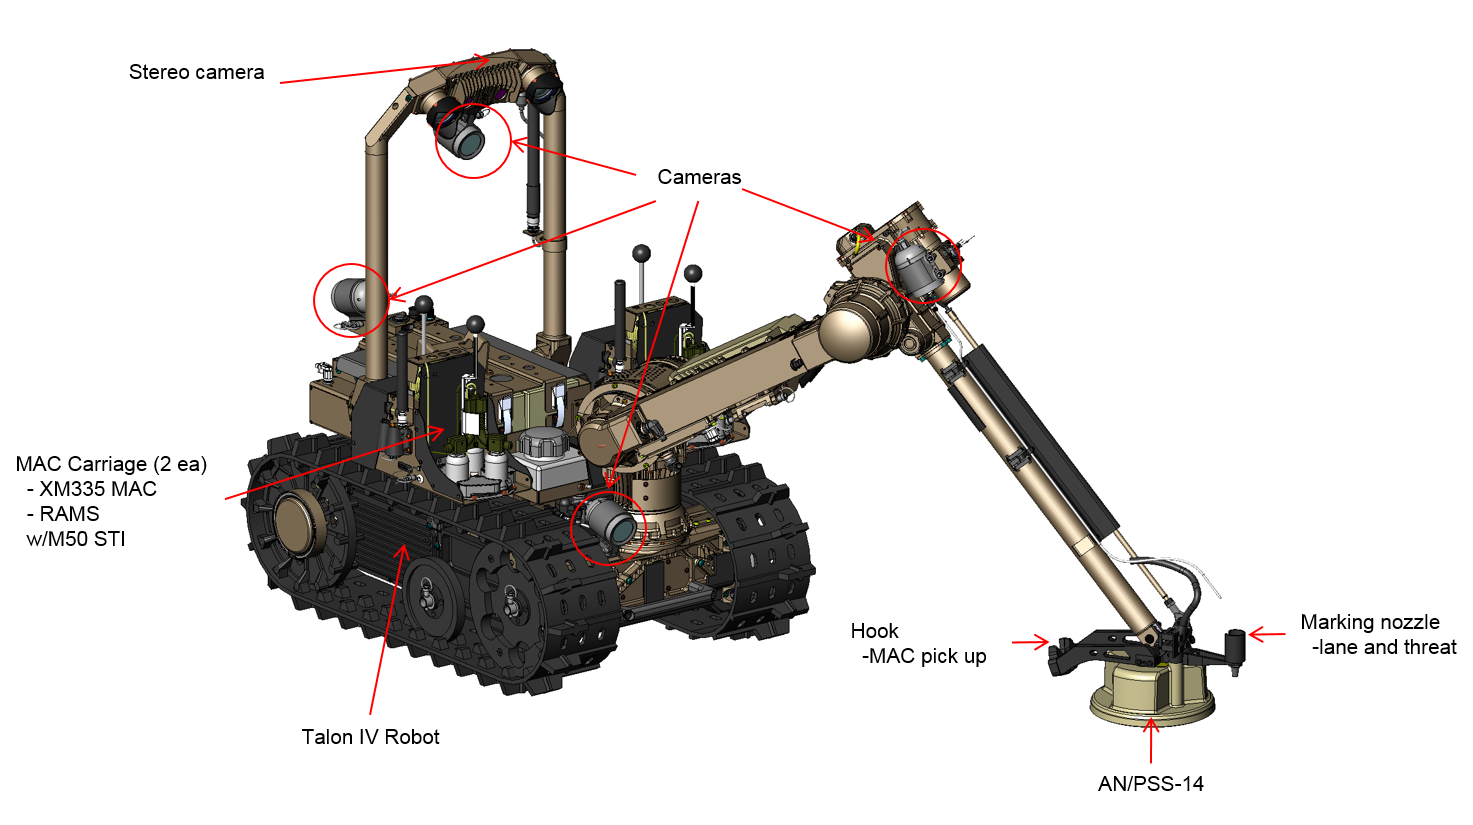 SREHD integrates new and existing capabilities on the Talon IV robotic platform, chosen in part for its ability to move through rough terrain. Capabilities include stereoscopic imaging, the AN/PSS-14's dual GPR and EMI sensor, and a MAC integrated with RAMS to neutralize explosive hazards. (SOURCE: Carnegie Robotics LLC)